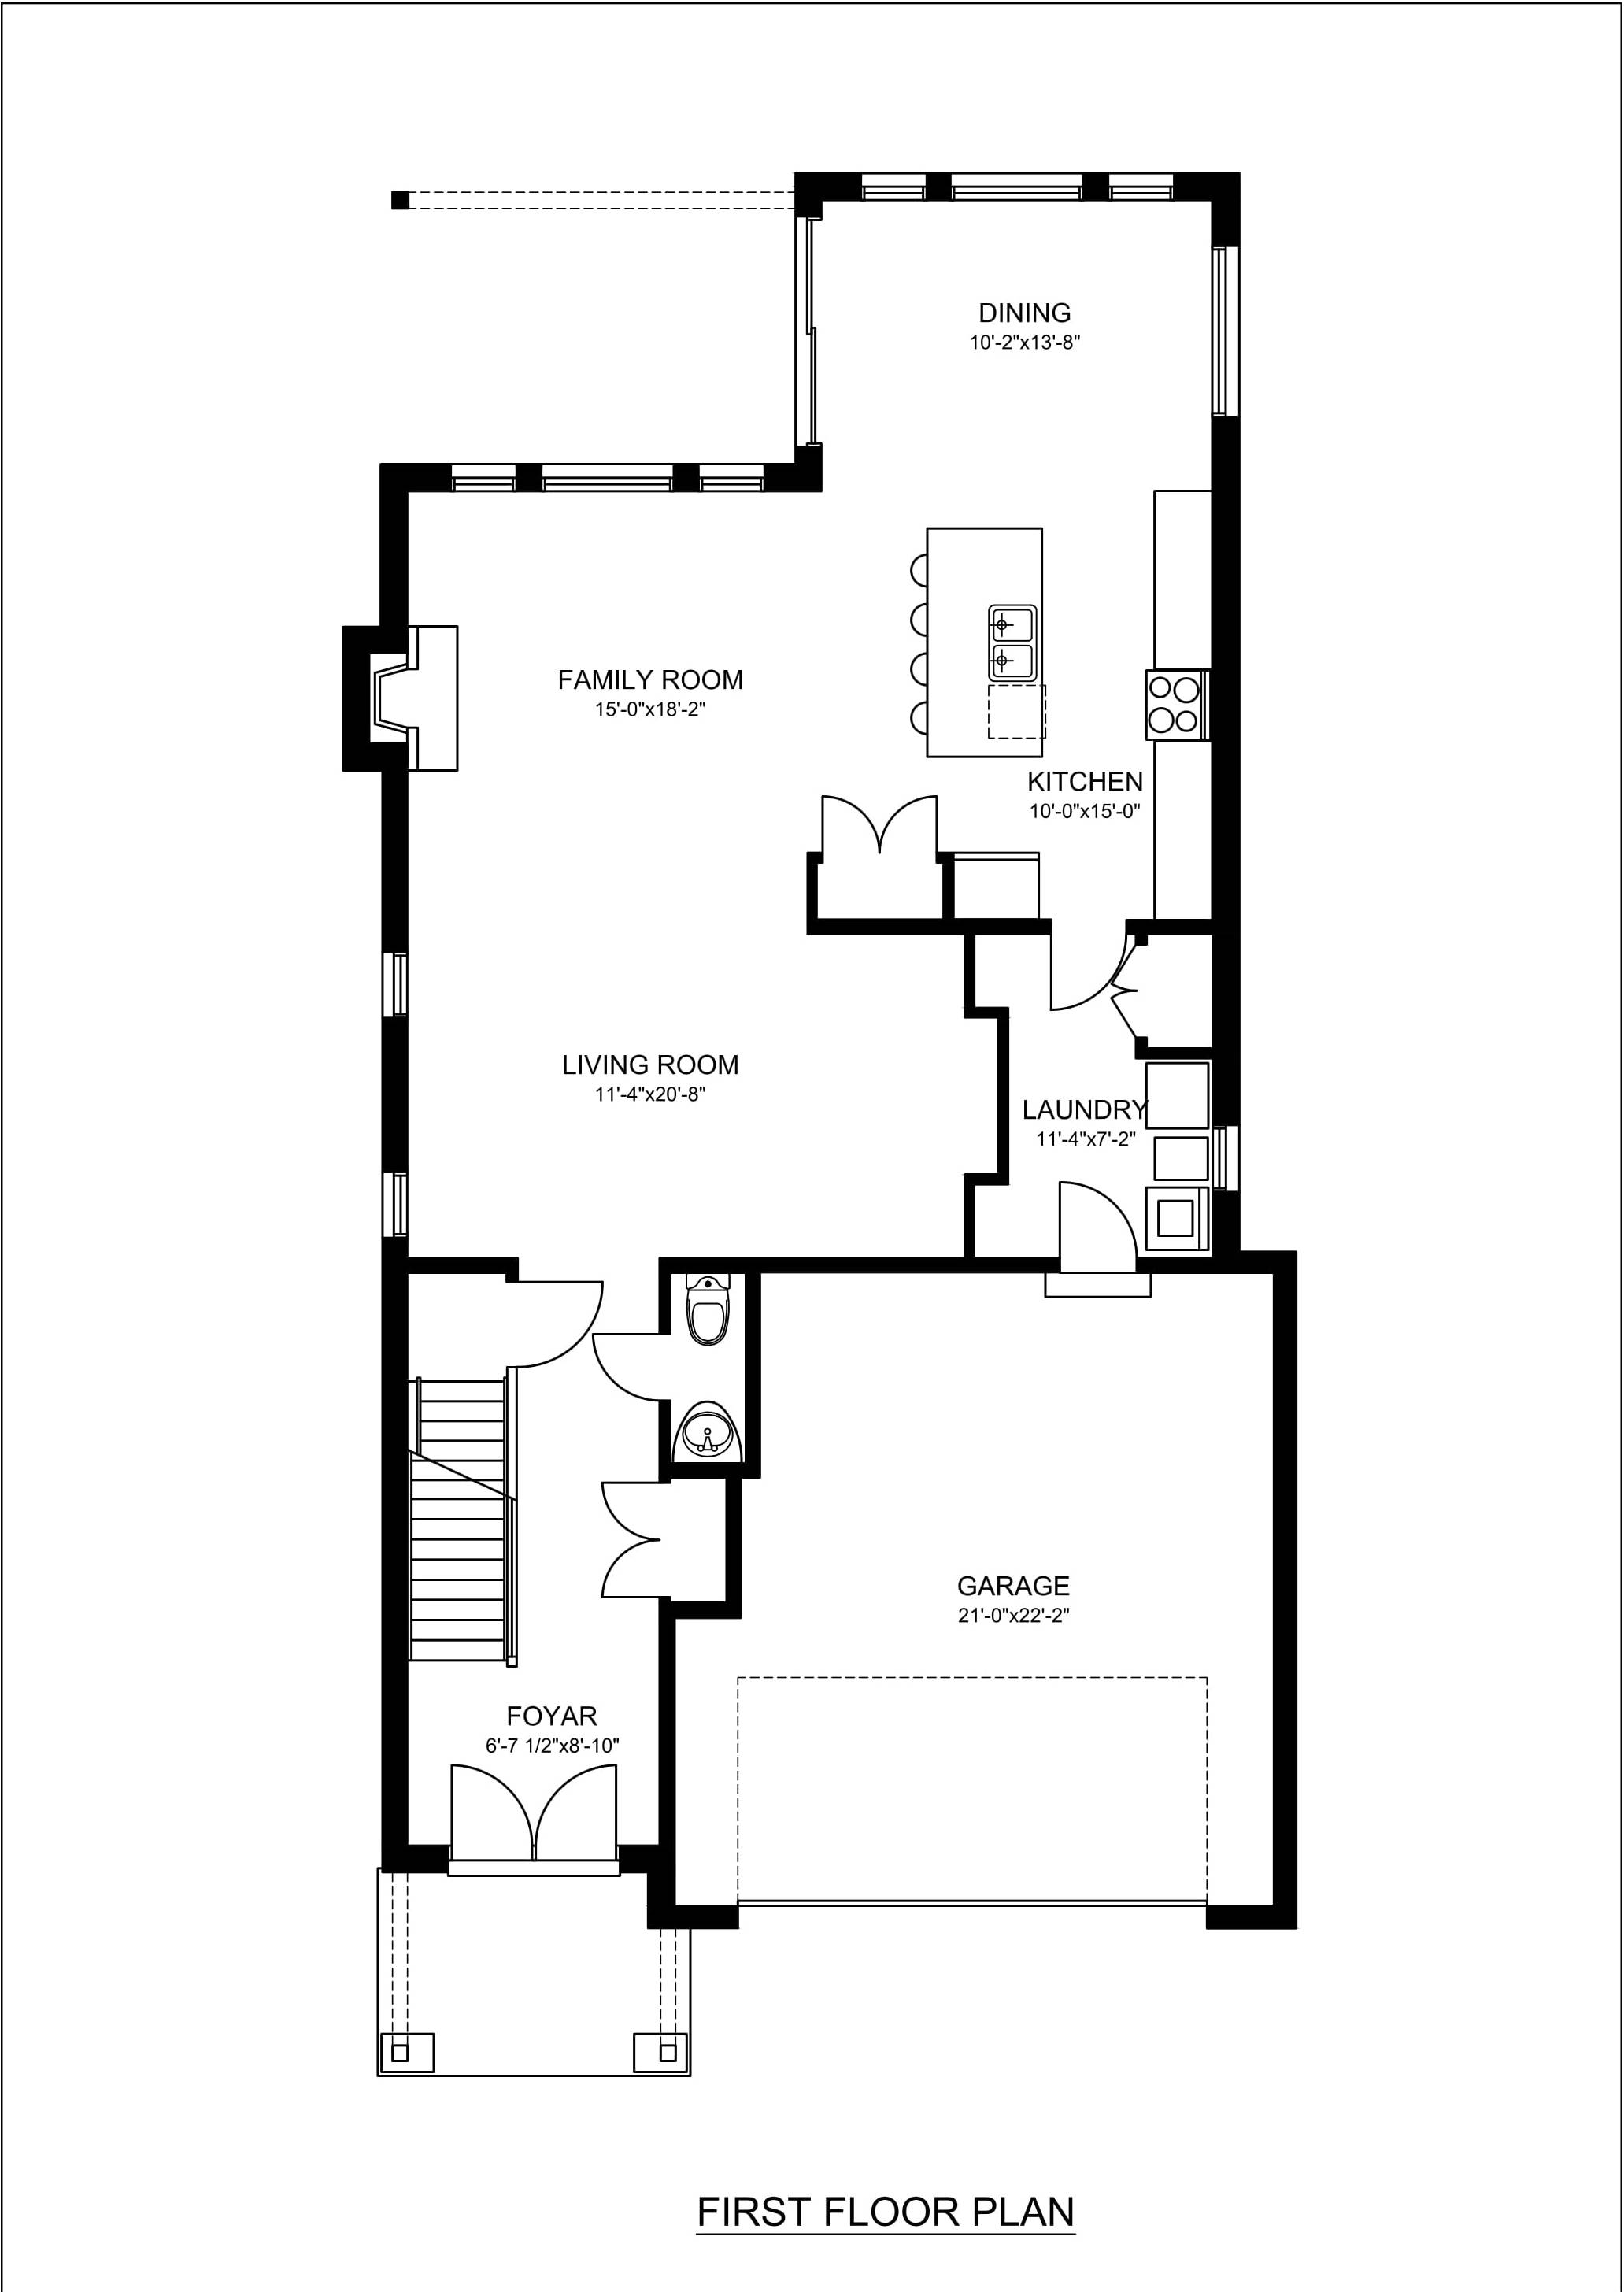 2d floor plan design rendering samples examples for Make a house plan